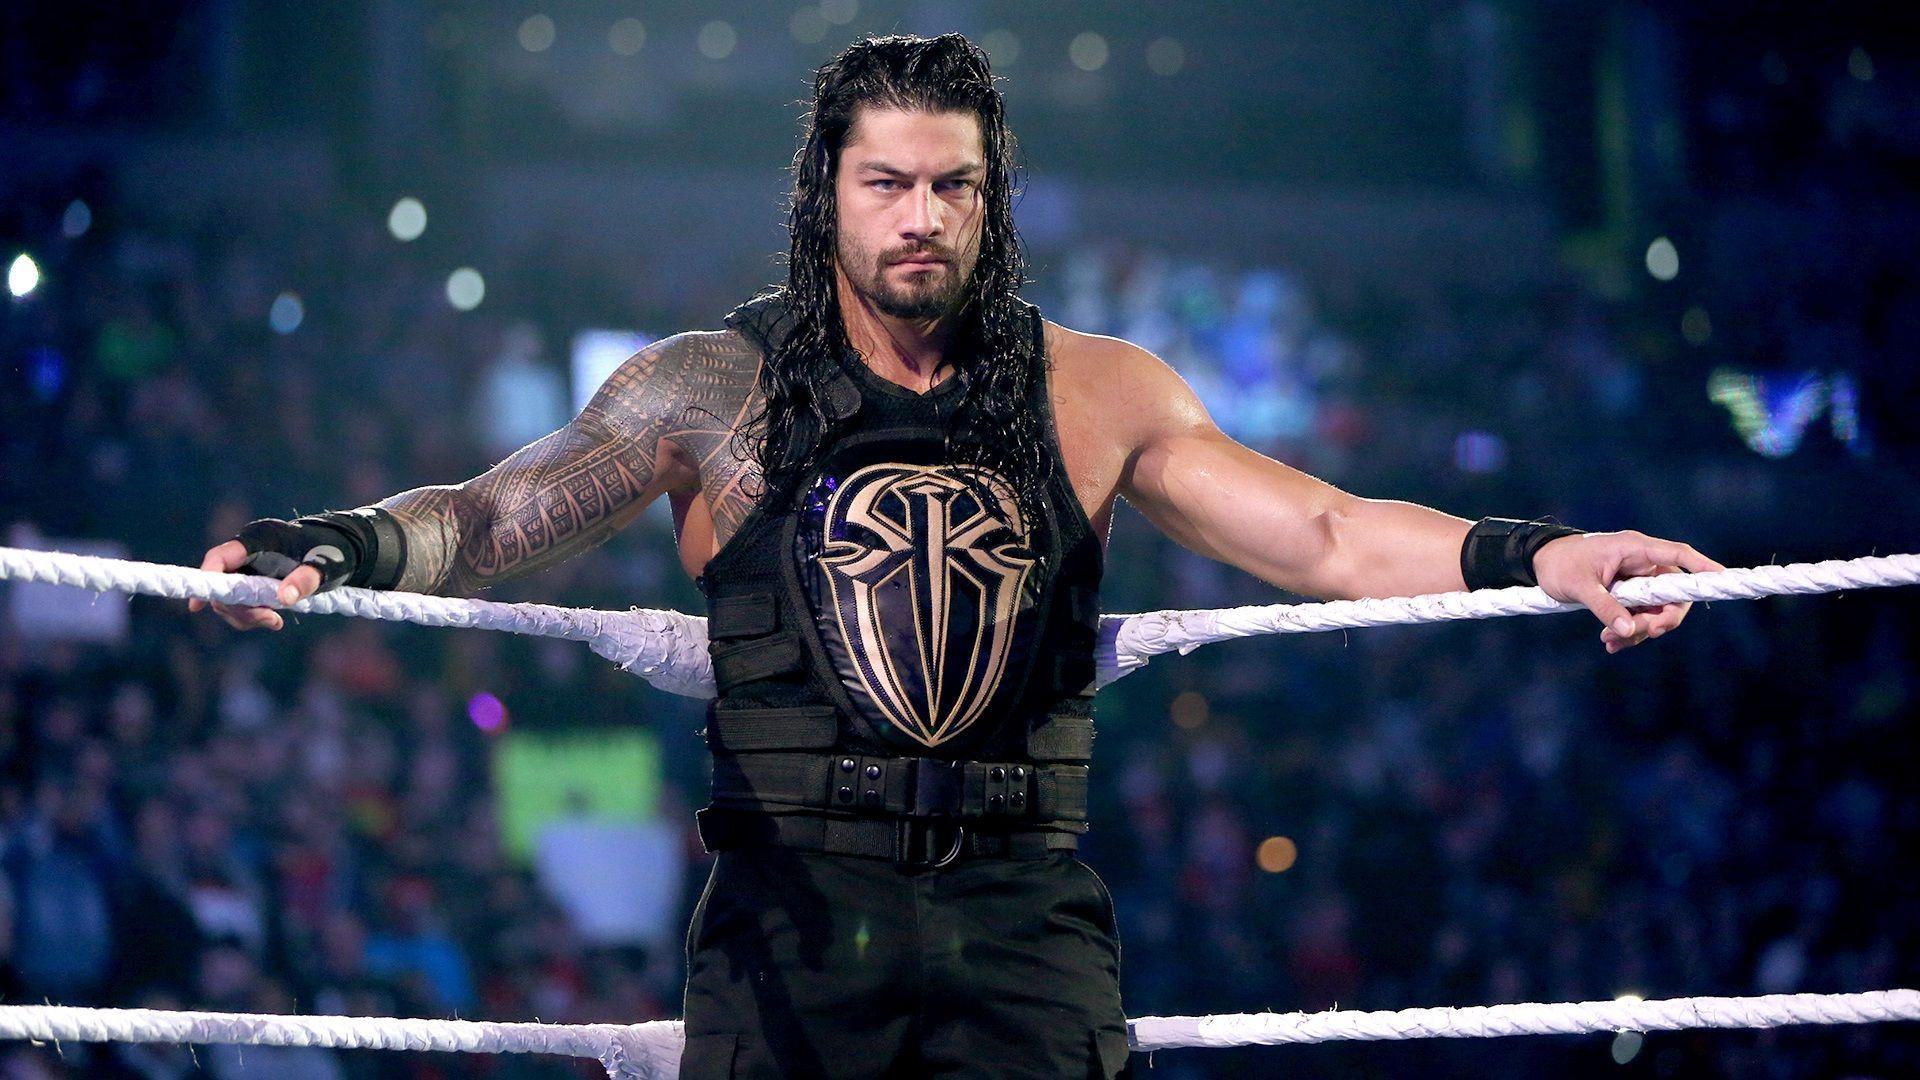 WWE SummerSlam 2019 Roman Reigns